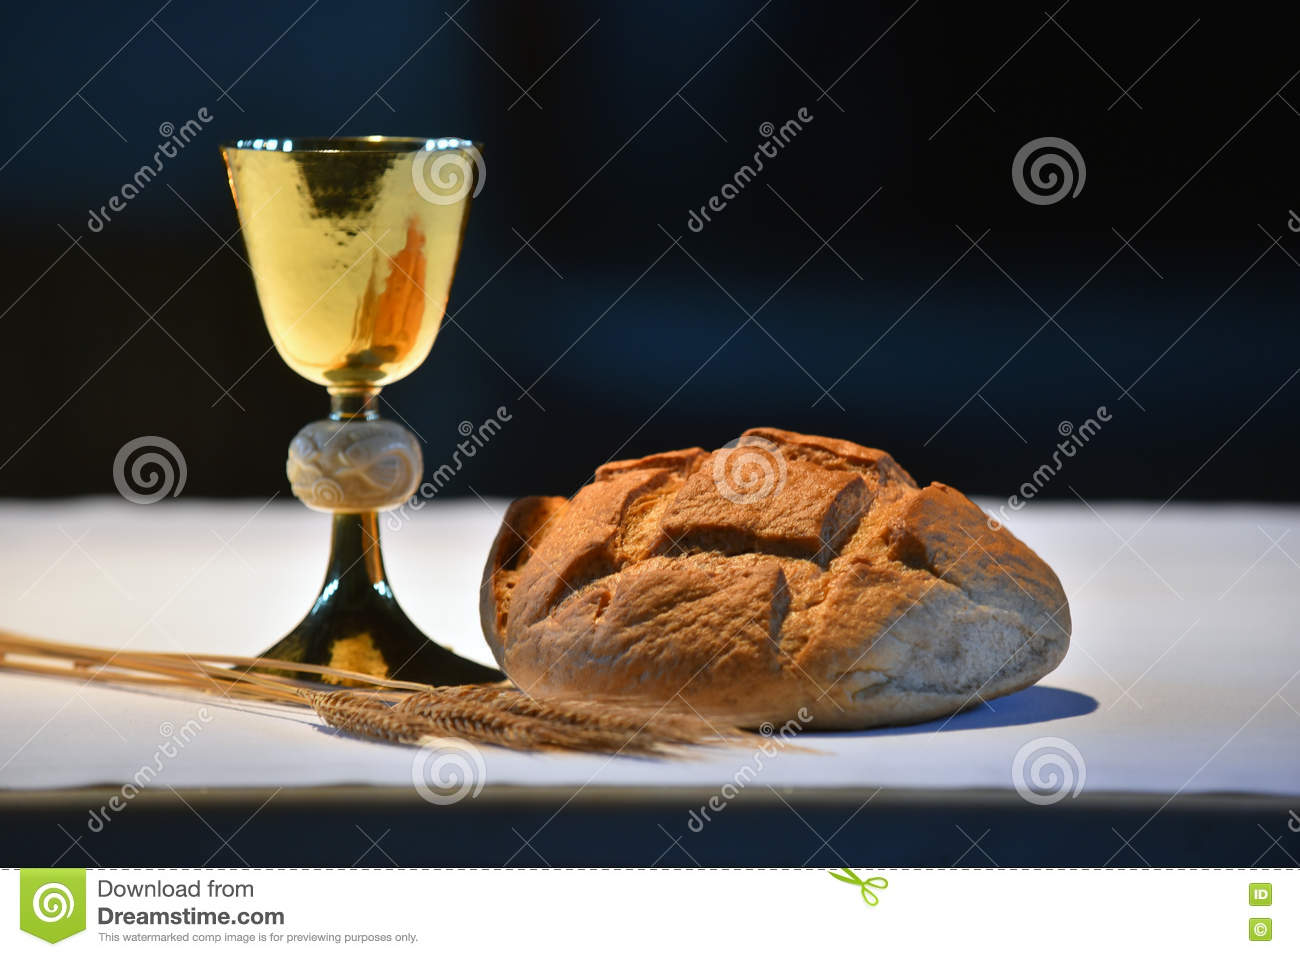 """a description of my experiences at the catholic liturgical celebration of the sacrament of eucharist Whether a guest in a pharisee's house or the host of a lakeside feast, jesus  made use  there is no description of a supper with bread and wine  we  remember this at every mass when we pray: """"this is my body, which will be given  up for you   many see in this story the familiar shape of the eucharistic liturgy:  gathering."""